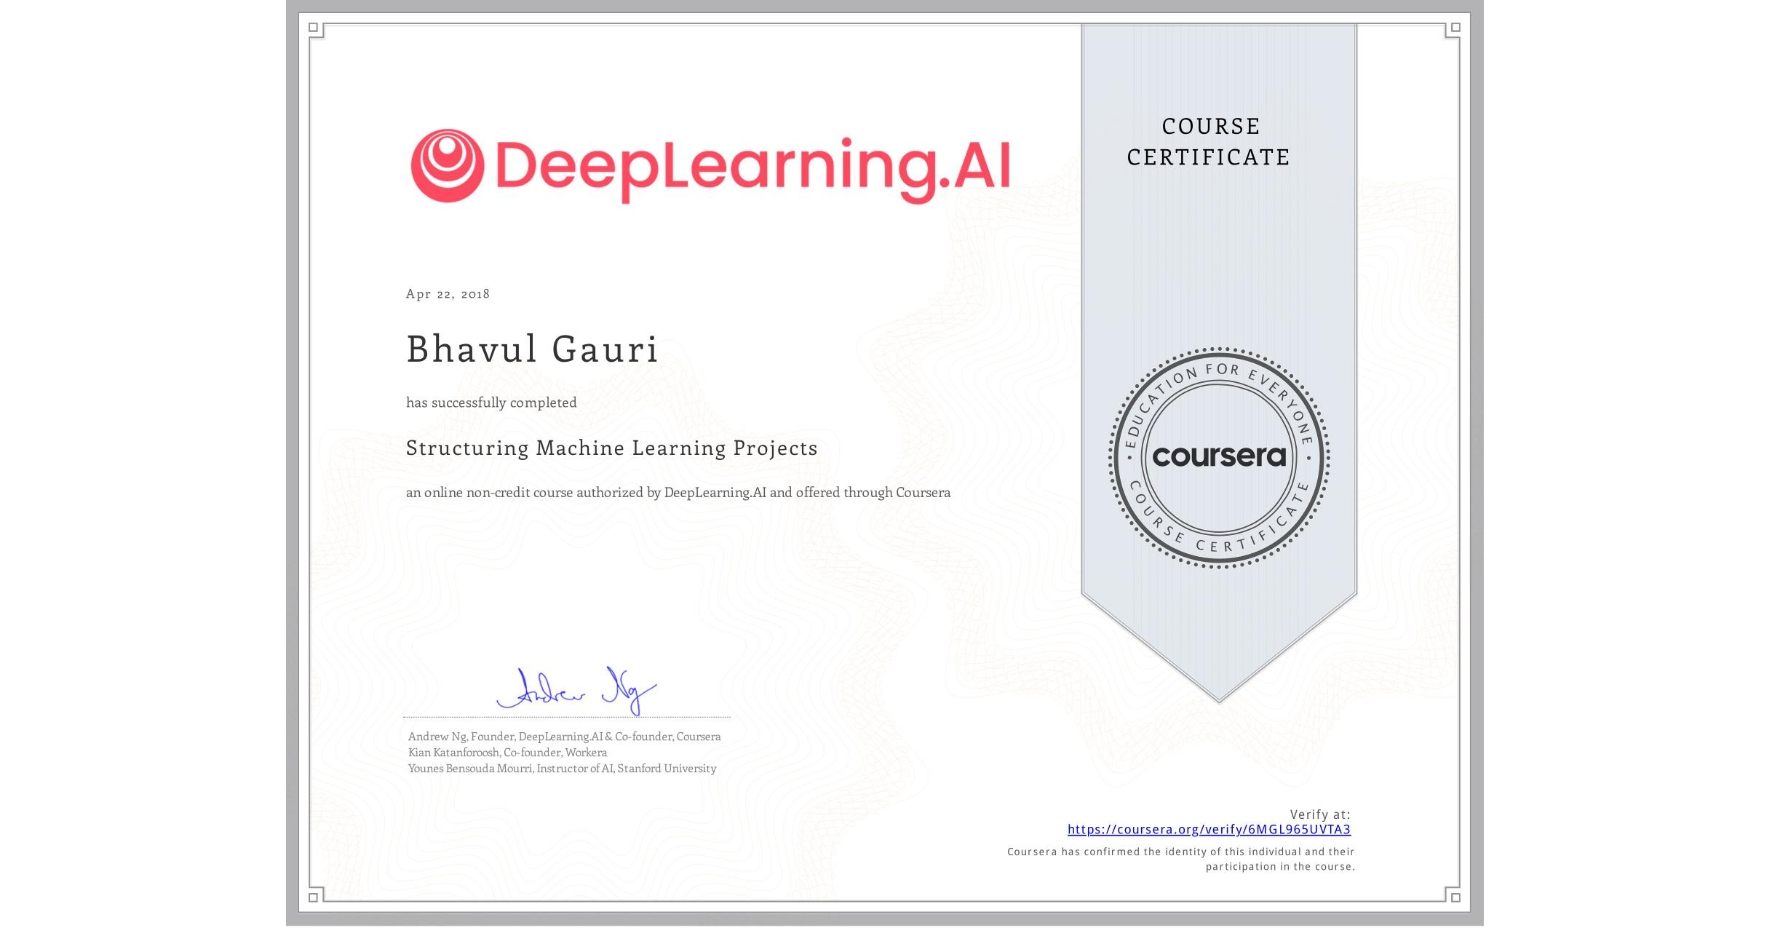 View certificate for Bhavul Gauri, Structuring Machine Learning Projects, an online non-credit course authorized by DeepLearning.AI and offered through Coursera